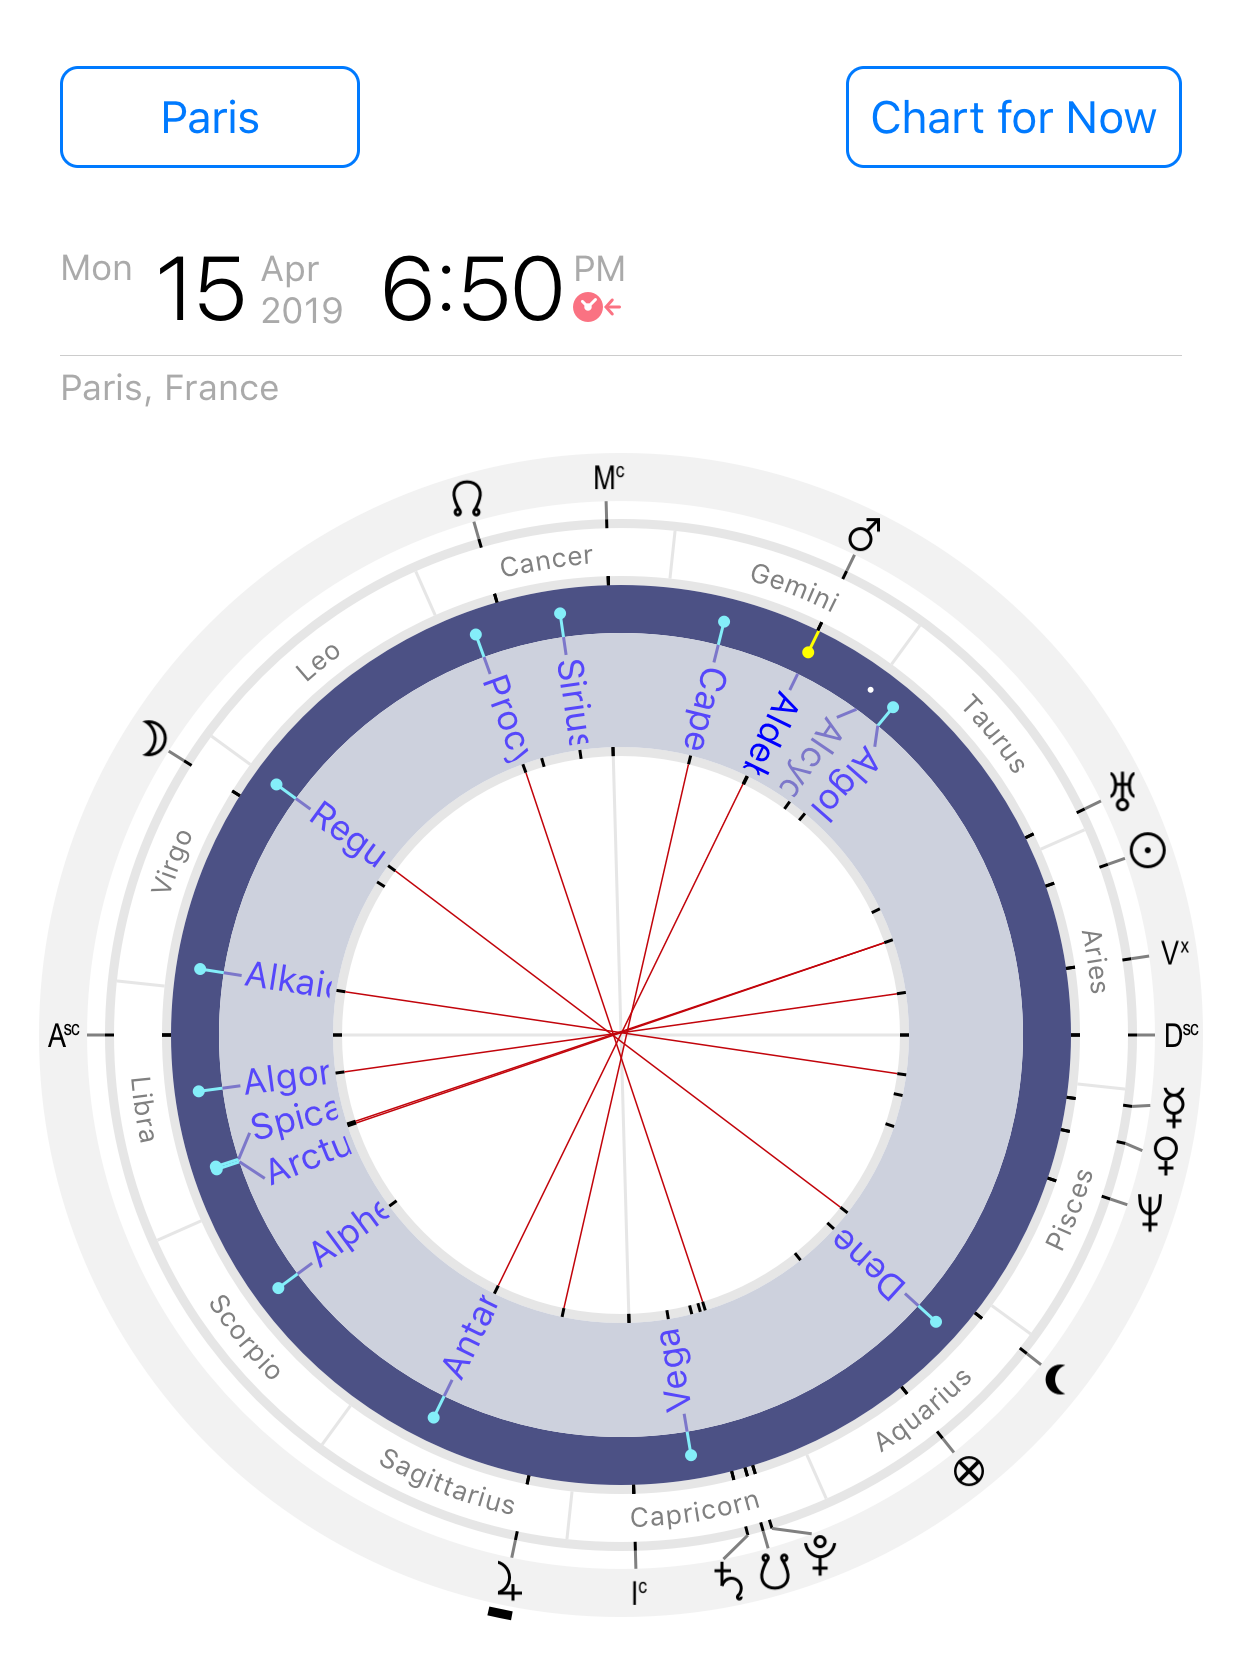 Astrological chart of the fixed stars aspects for Notre-Dame Cathedral fire of 15 April 2019, 18:50